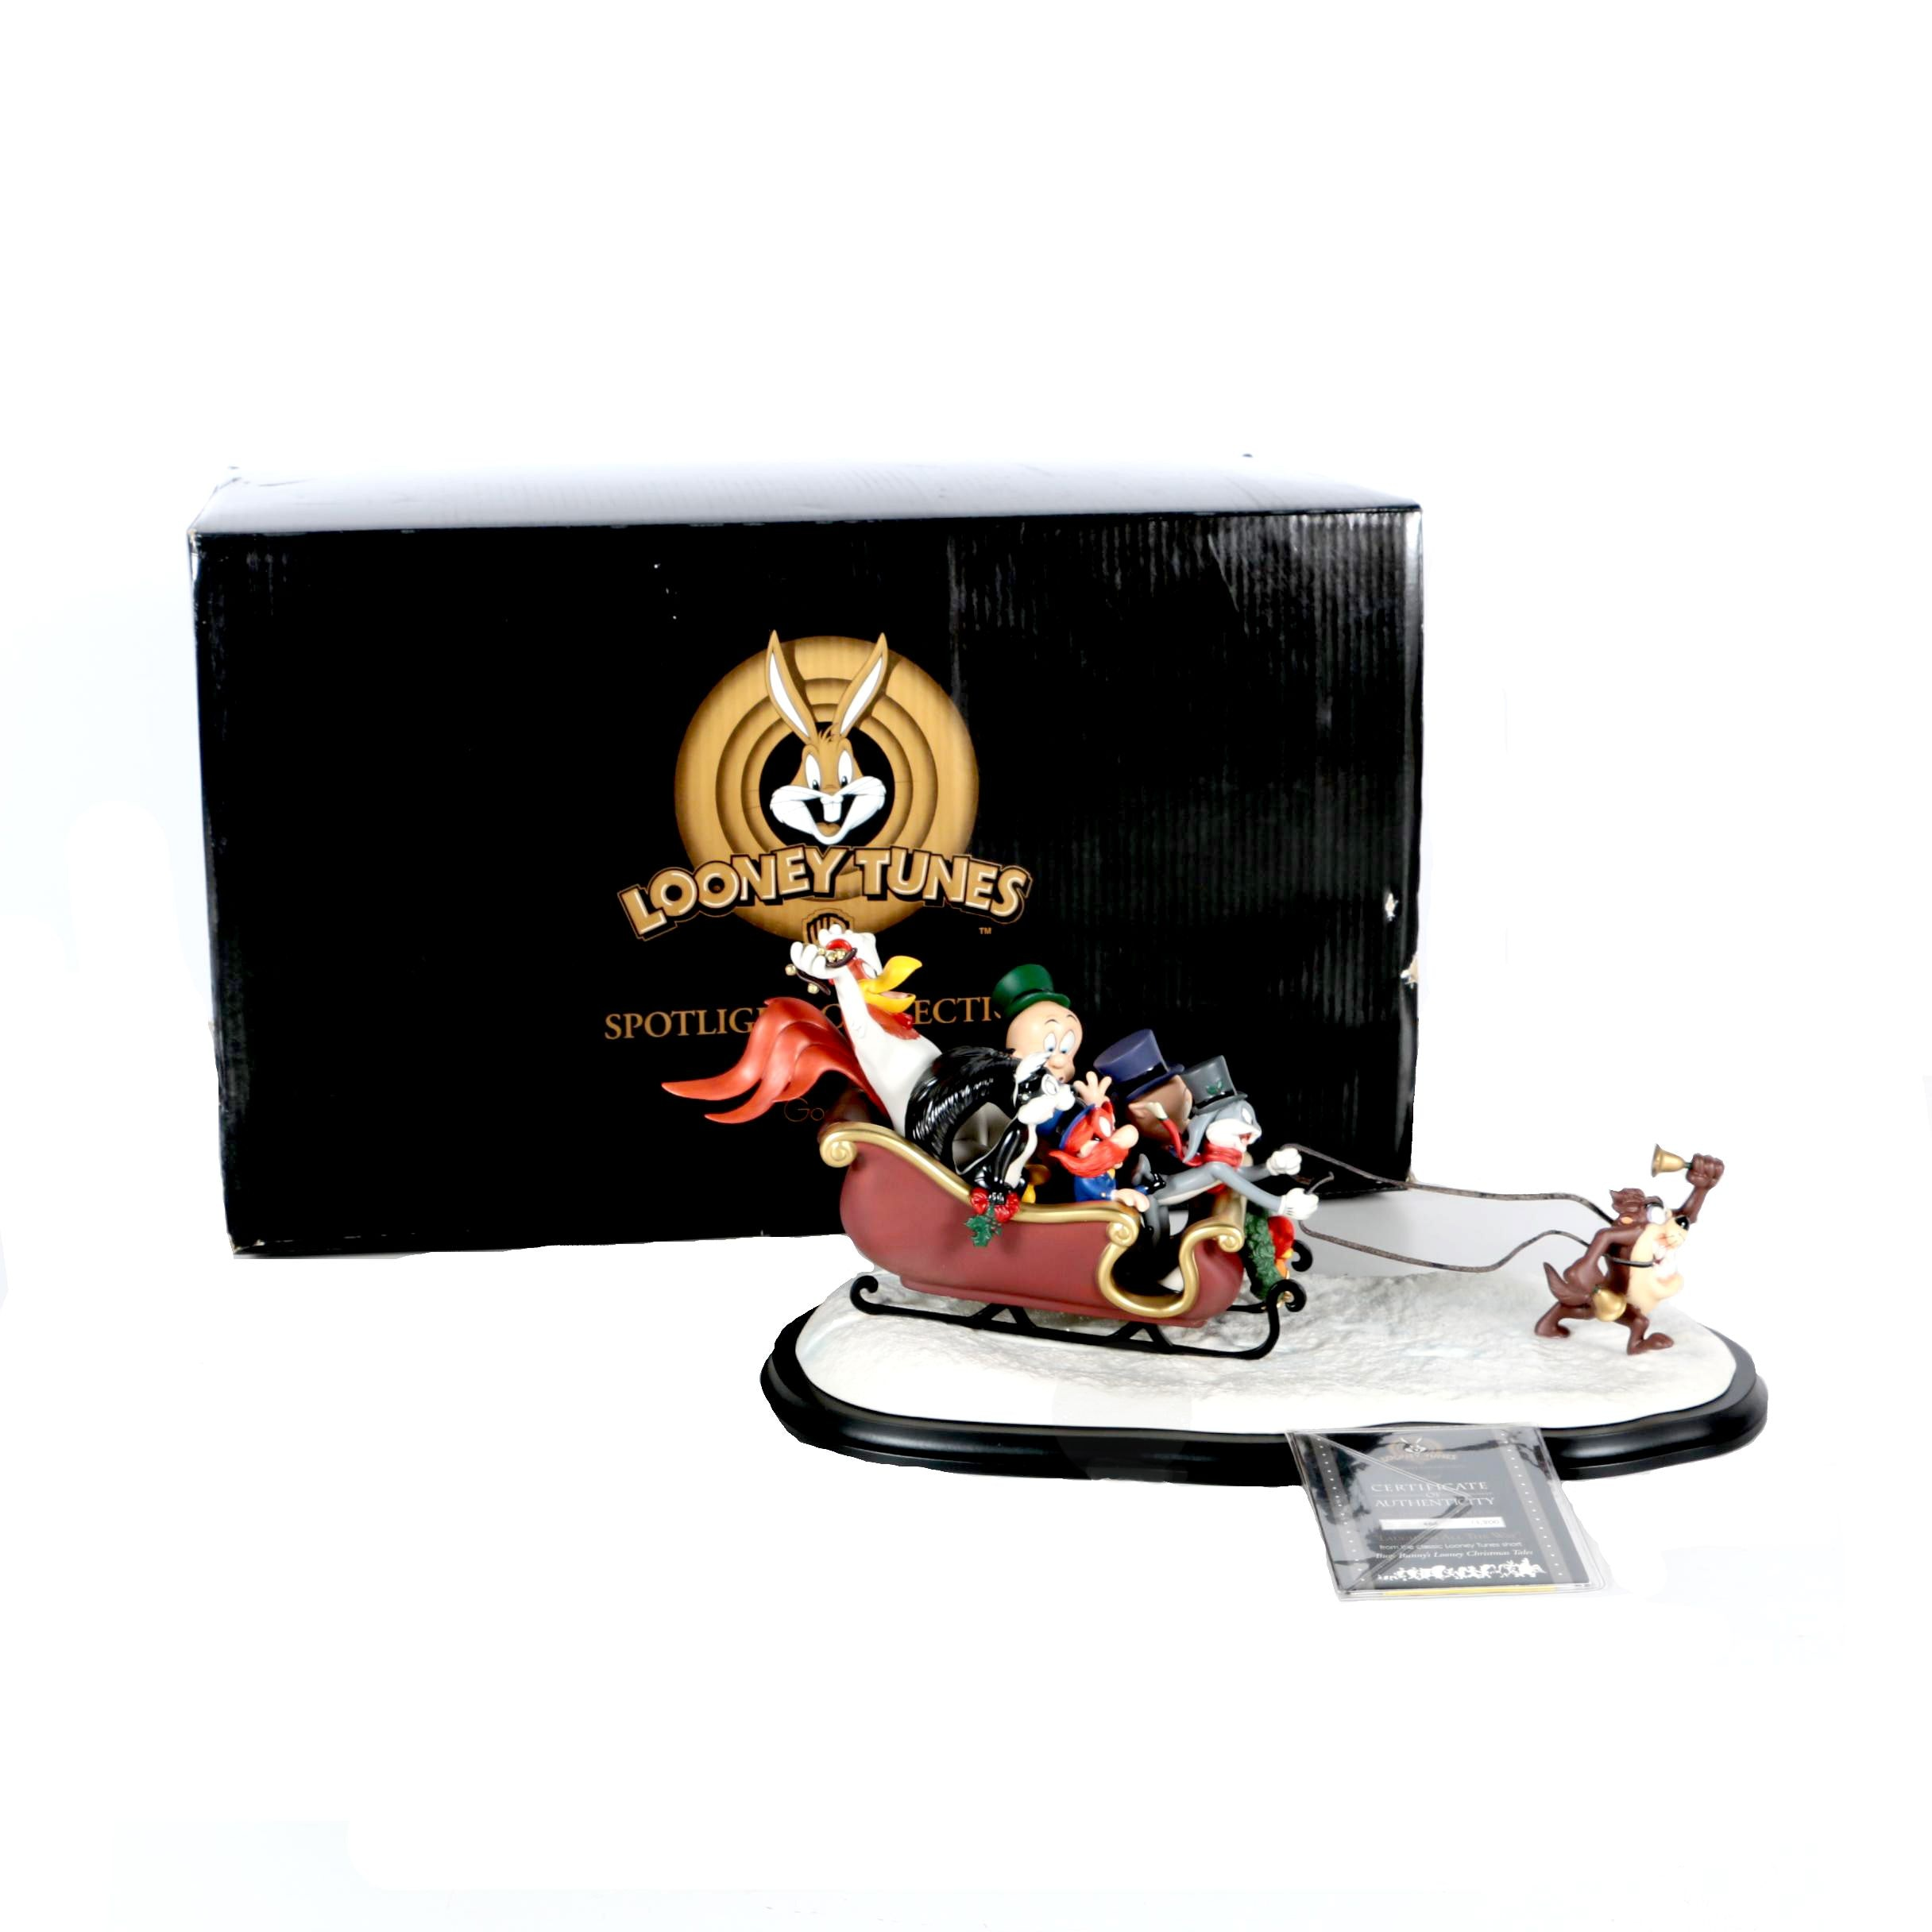 """Looney Tunes """"Laughing All The Way"""" Limited Edition Christmas Tales Figurine"""